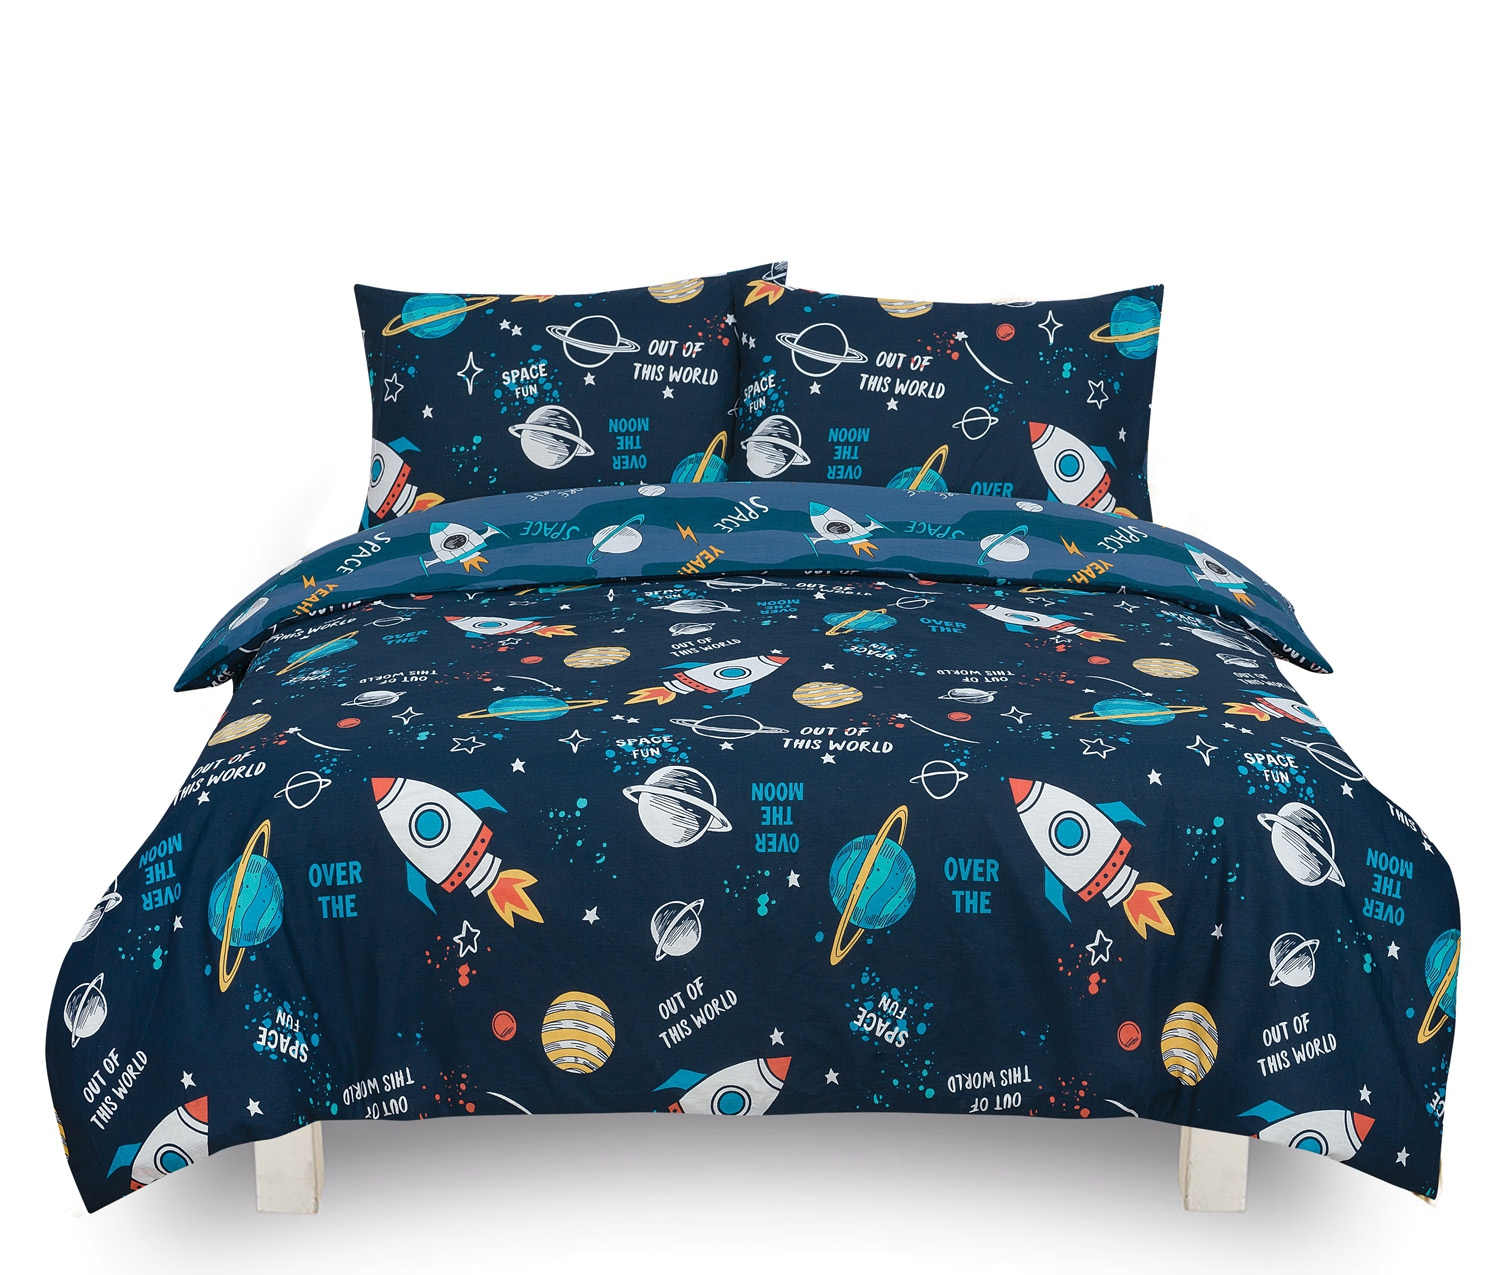 Space 'Out of This World' Kids Two Sided Design Reversible Rotary Single Bed Duvet Quilt Cover Set